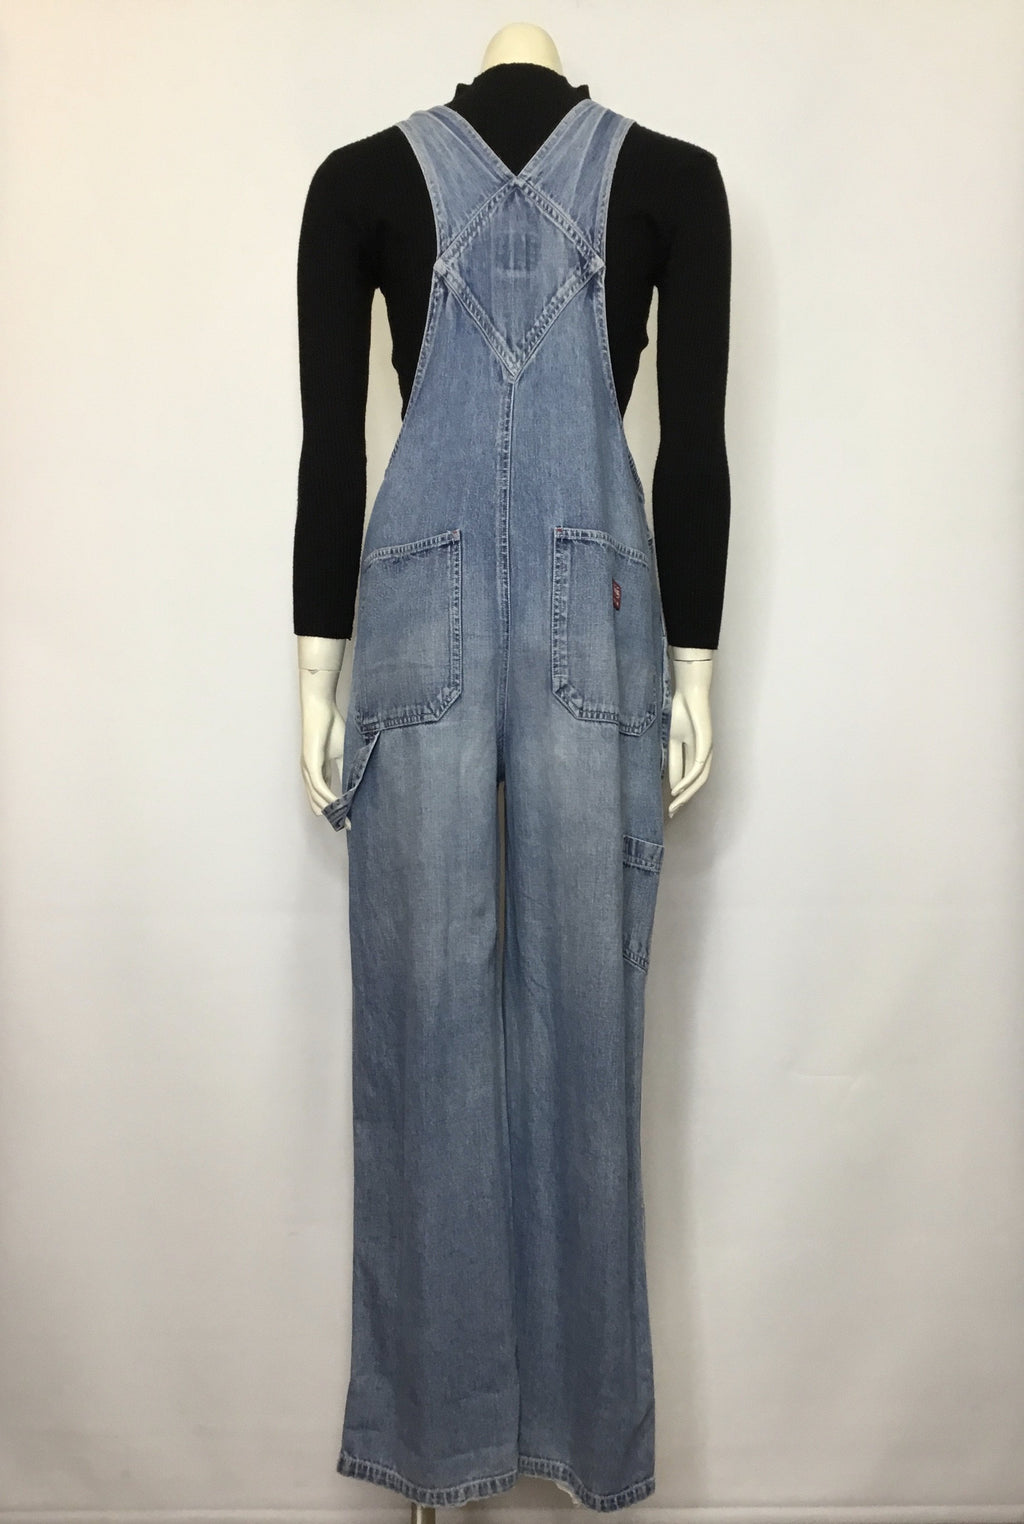 Route 66 Overalls